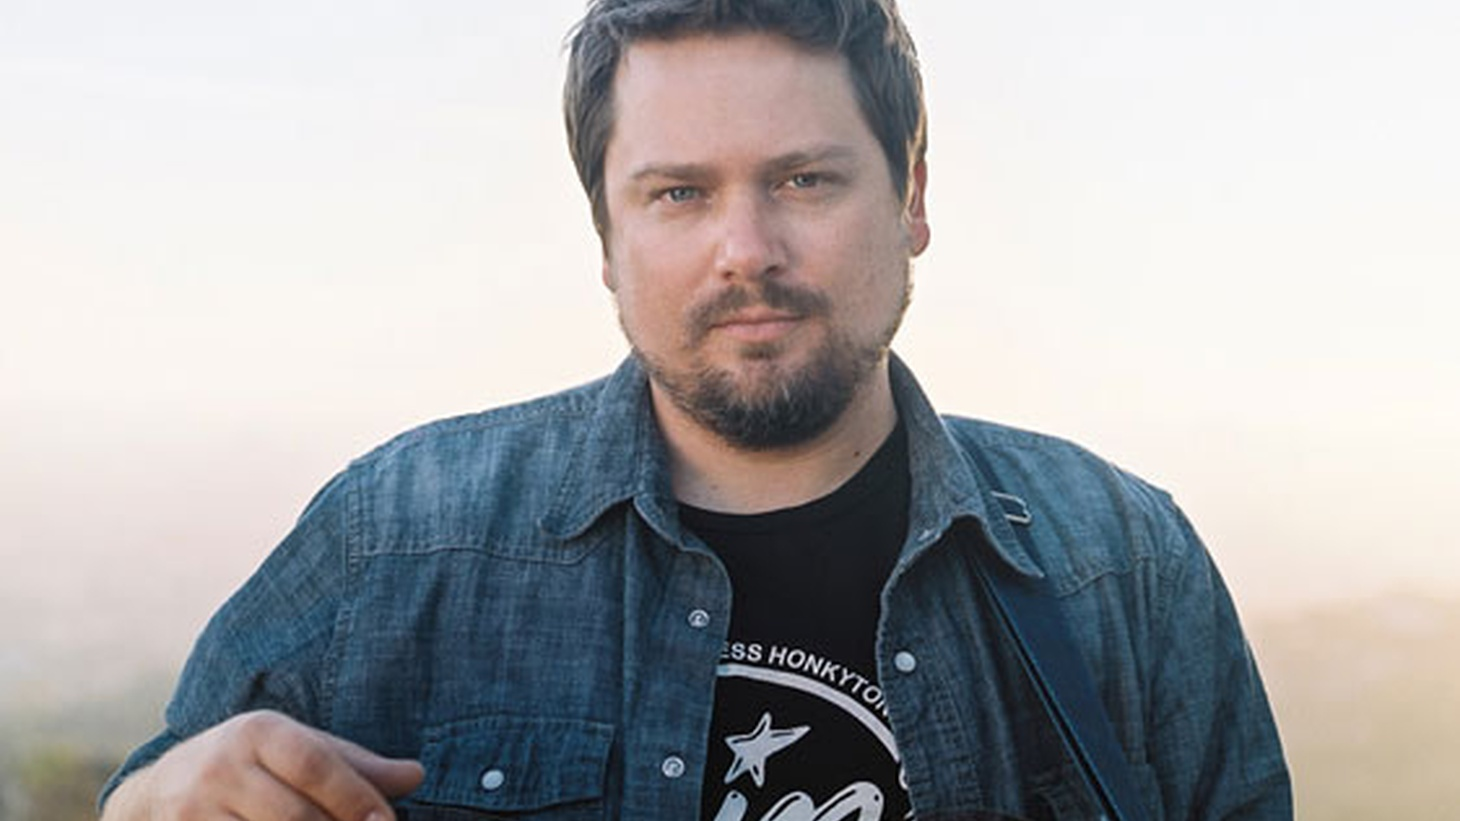 Nickel Creek founder and guitarist Sean Watkins steps into the spotlight with a solo album.